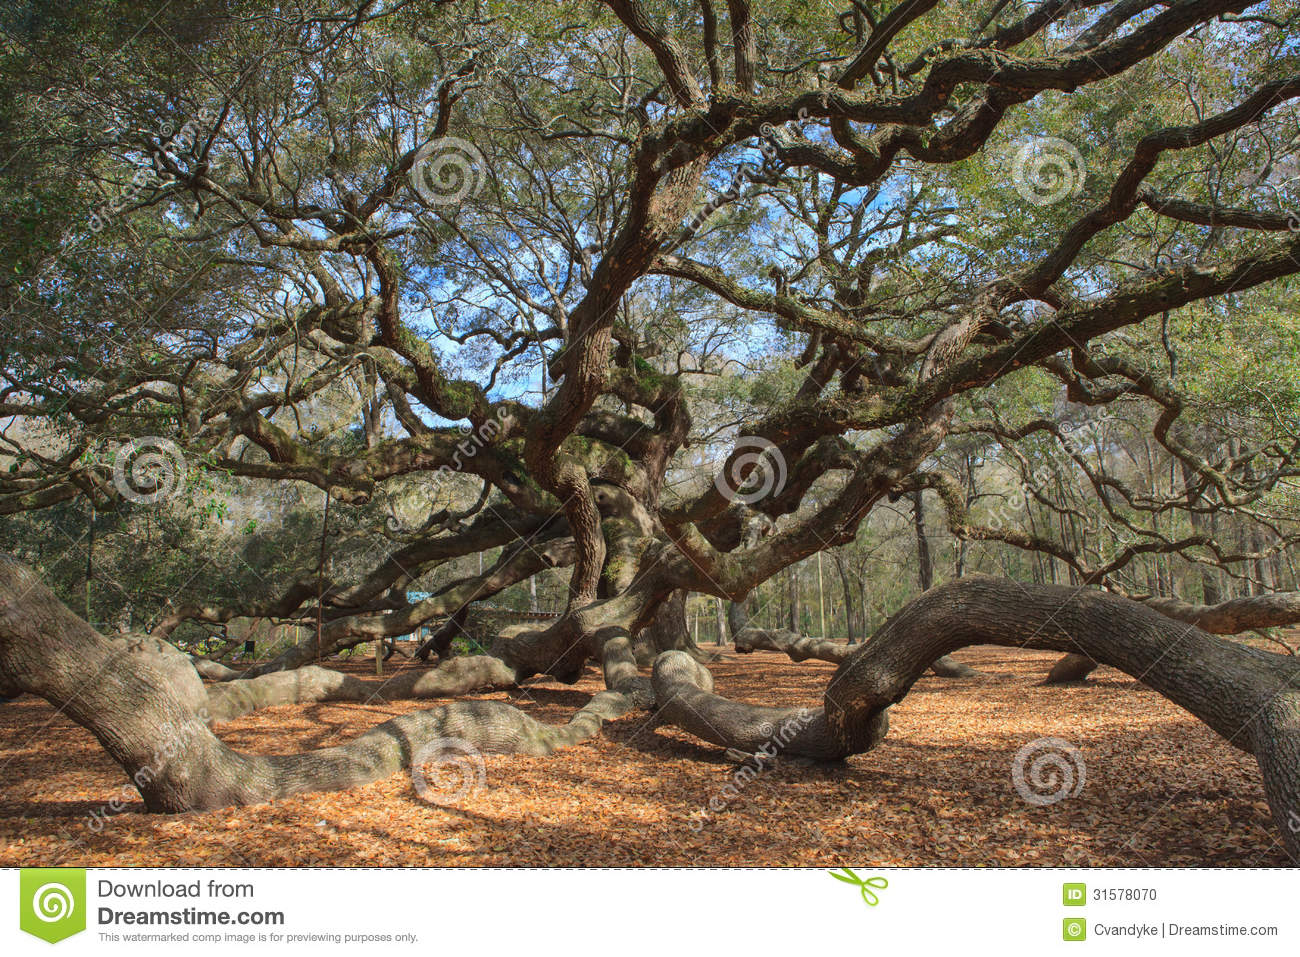 Angel Oak Tree Charleston South Carolina Stock Photo - Image